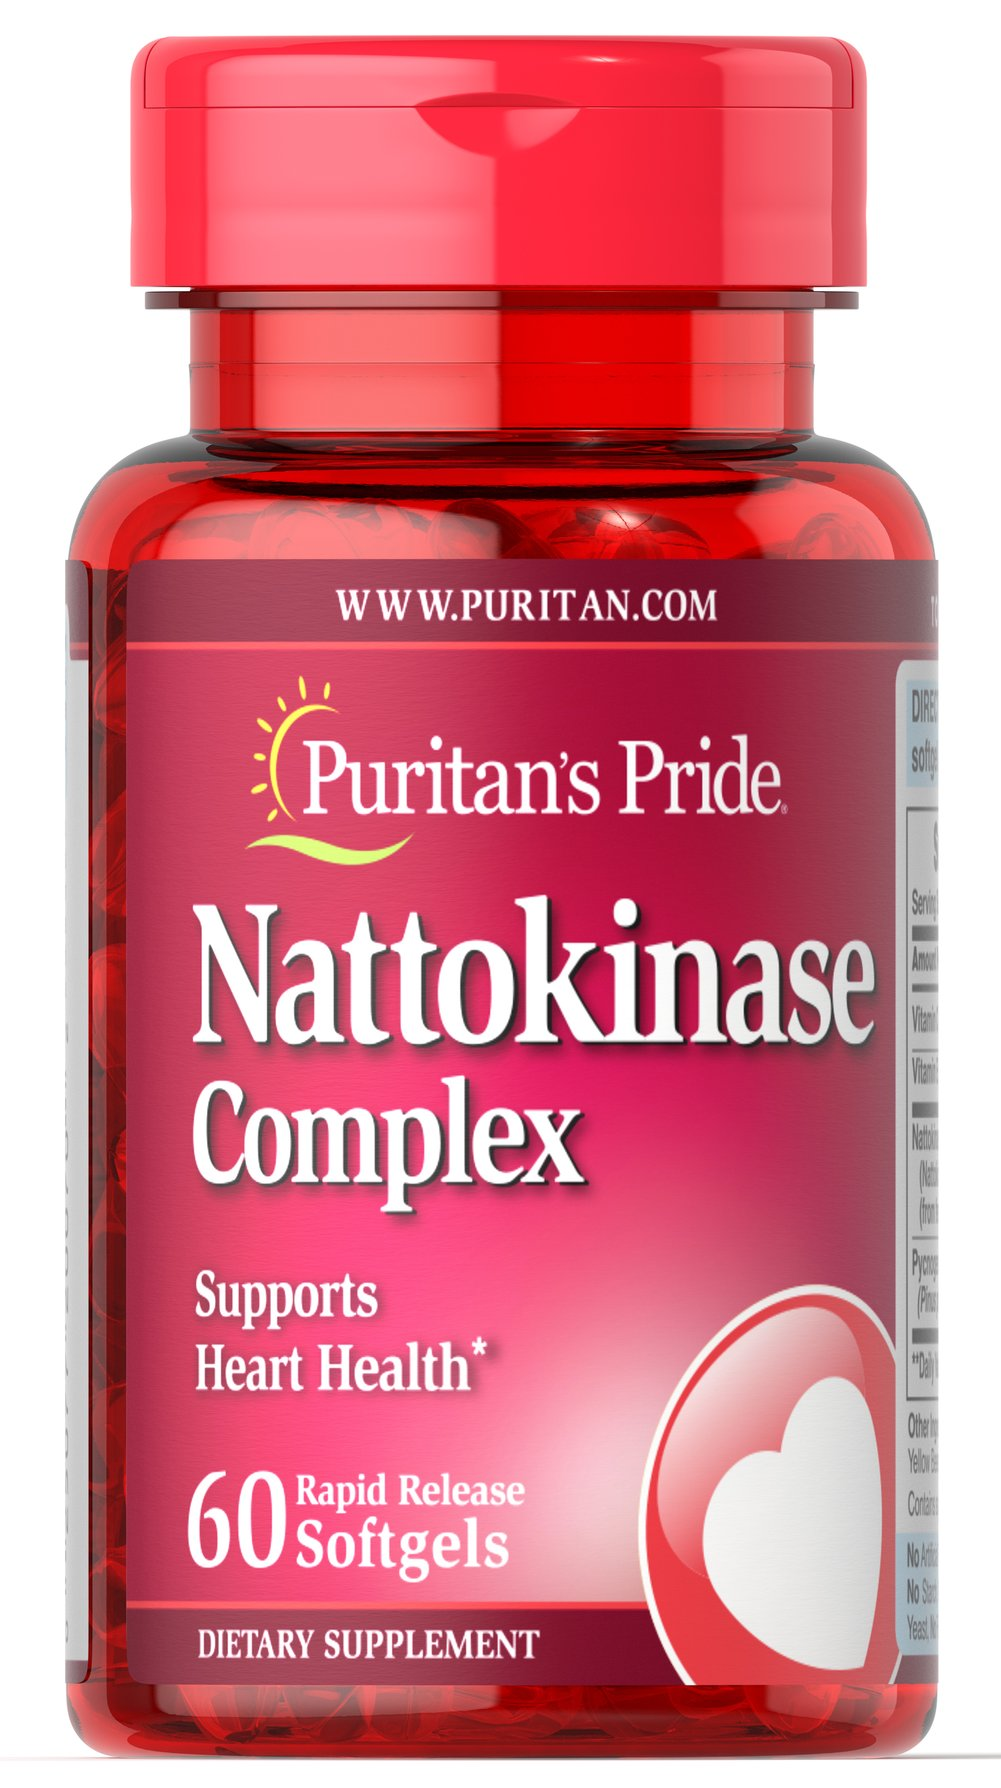 Nattokinase 100 mg Complex Thumbnail Alternate Bottle View